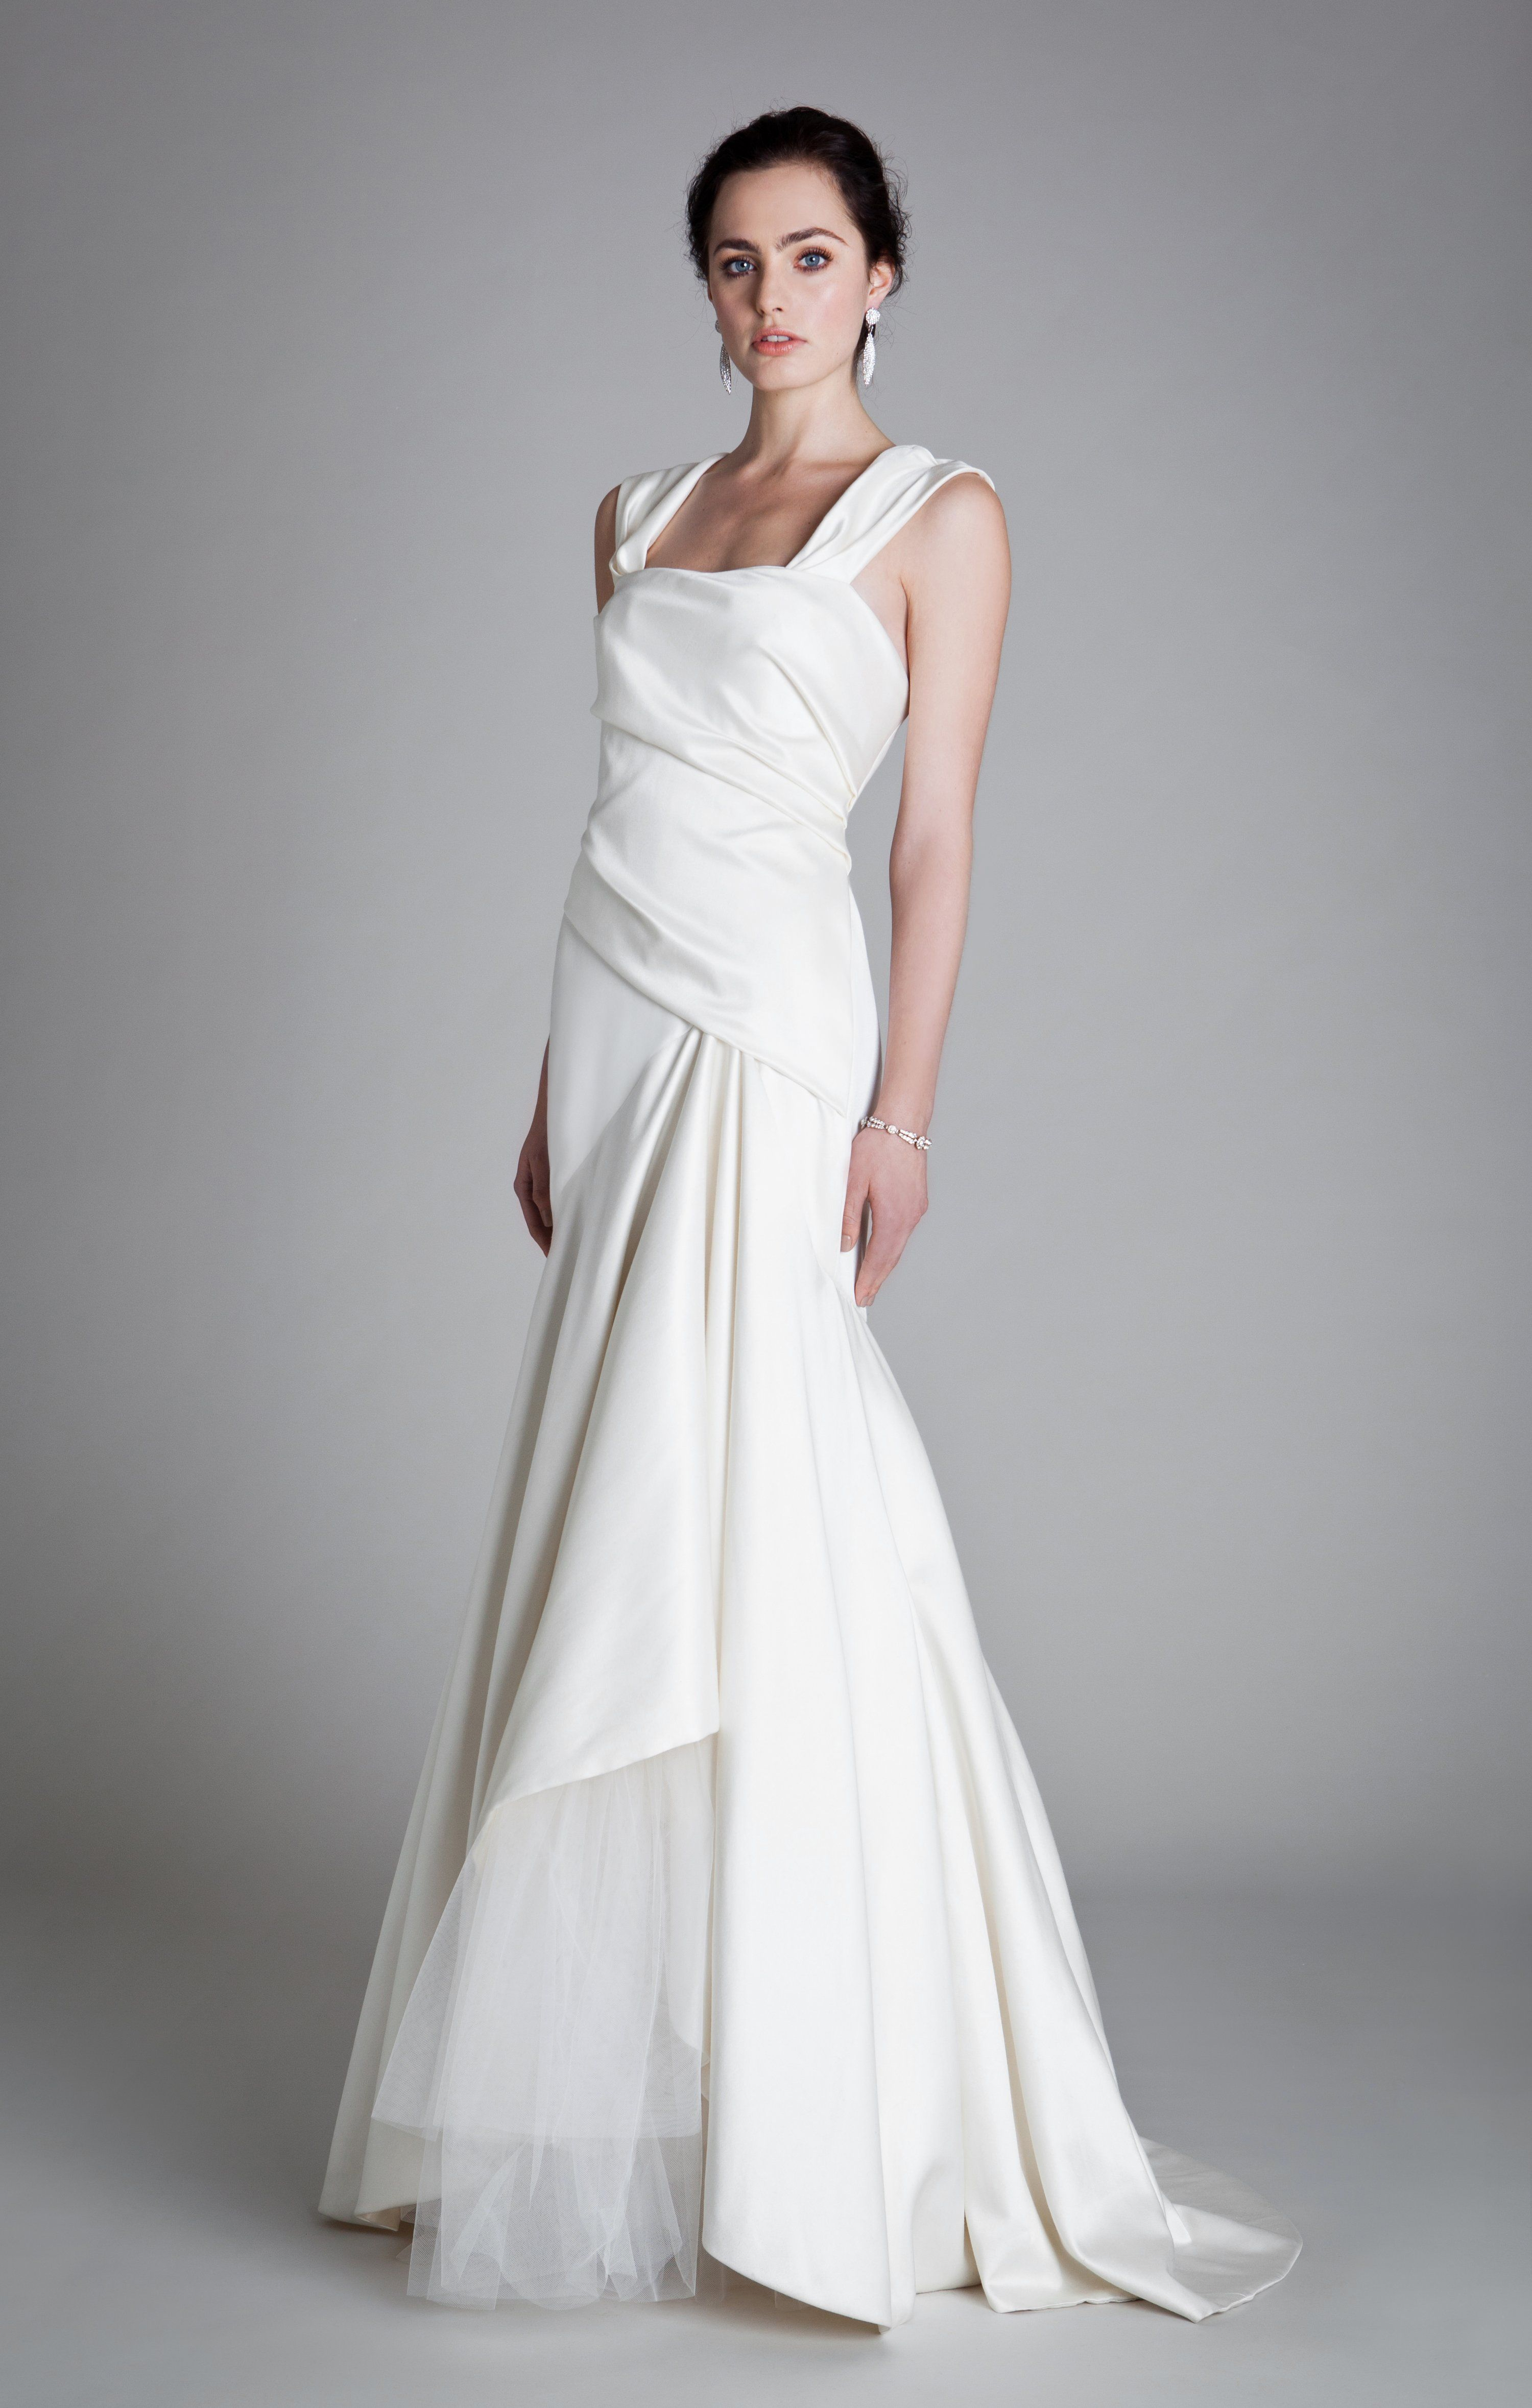 Temperley Bridal, Beatrice Collection, Arianna Dress